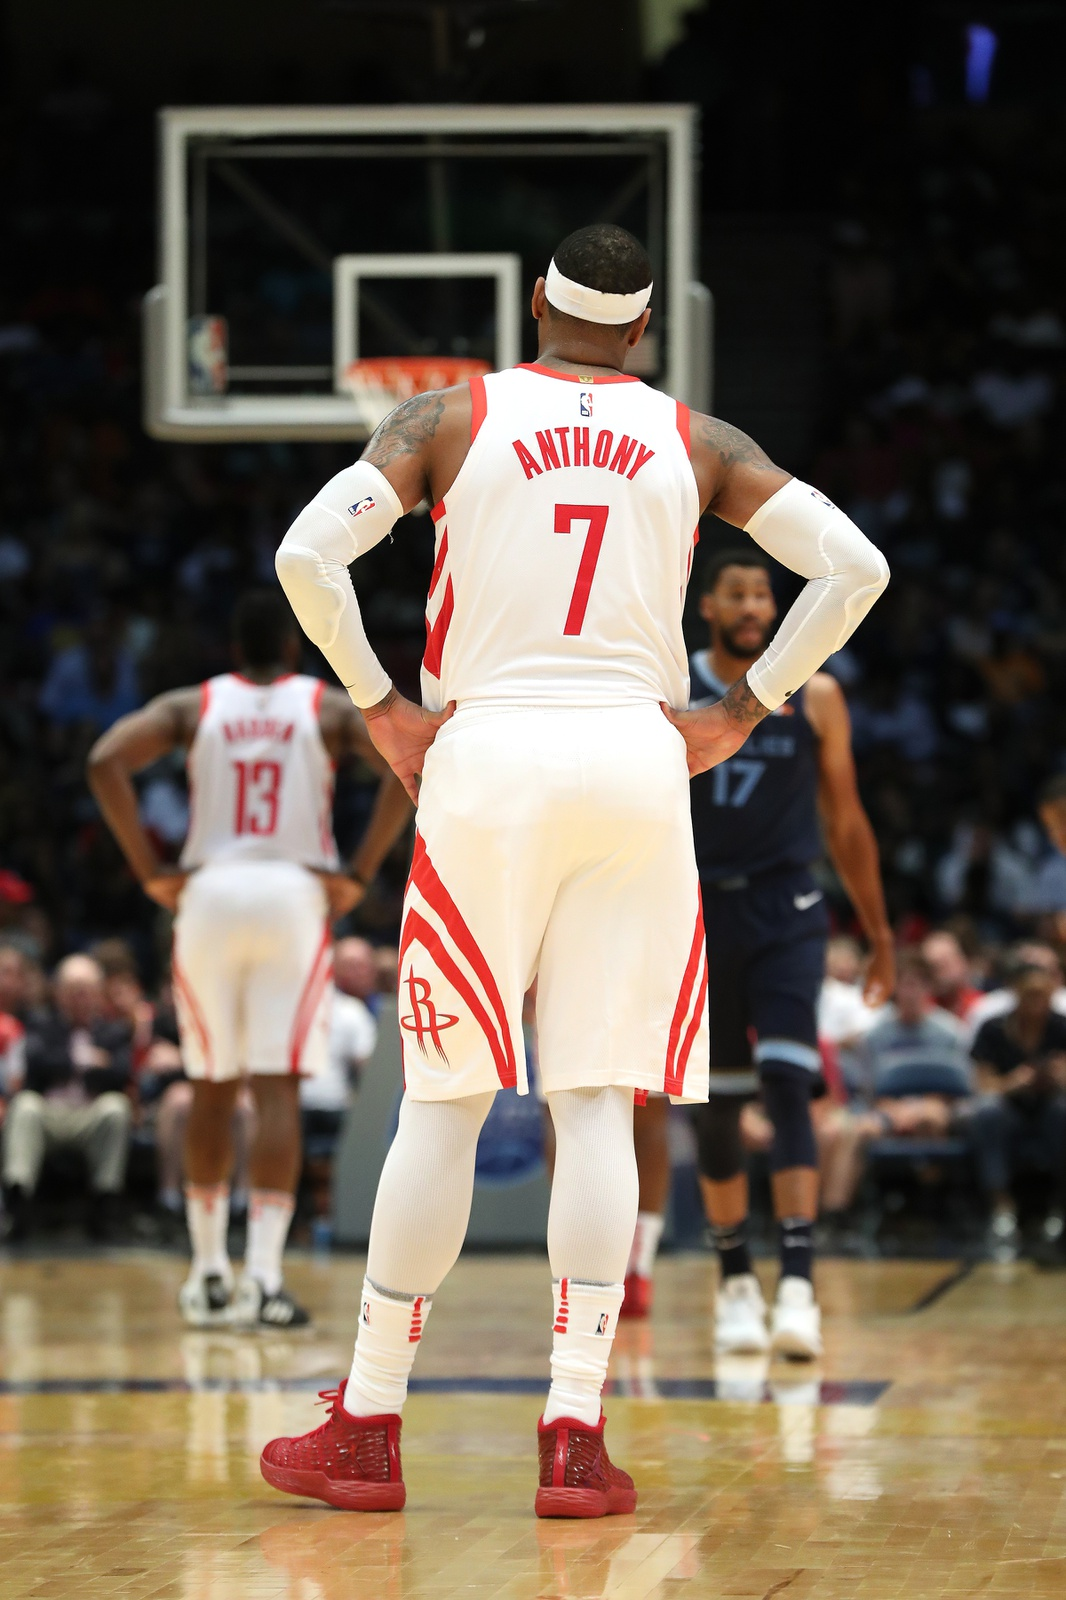 Carmelo Anthony #7 of the Houston Rockets looks on during the game against the Memphis Grizzlies on October 2, 2018 at Legacy Arena in Birmingham, Alabama.